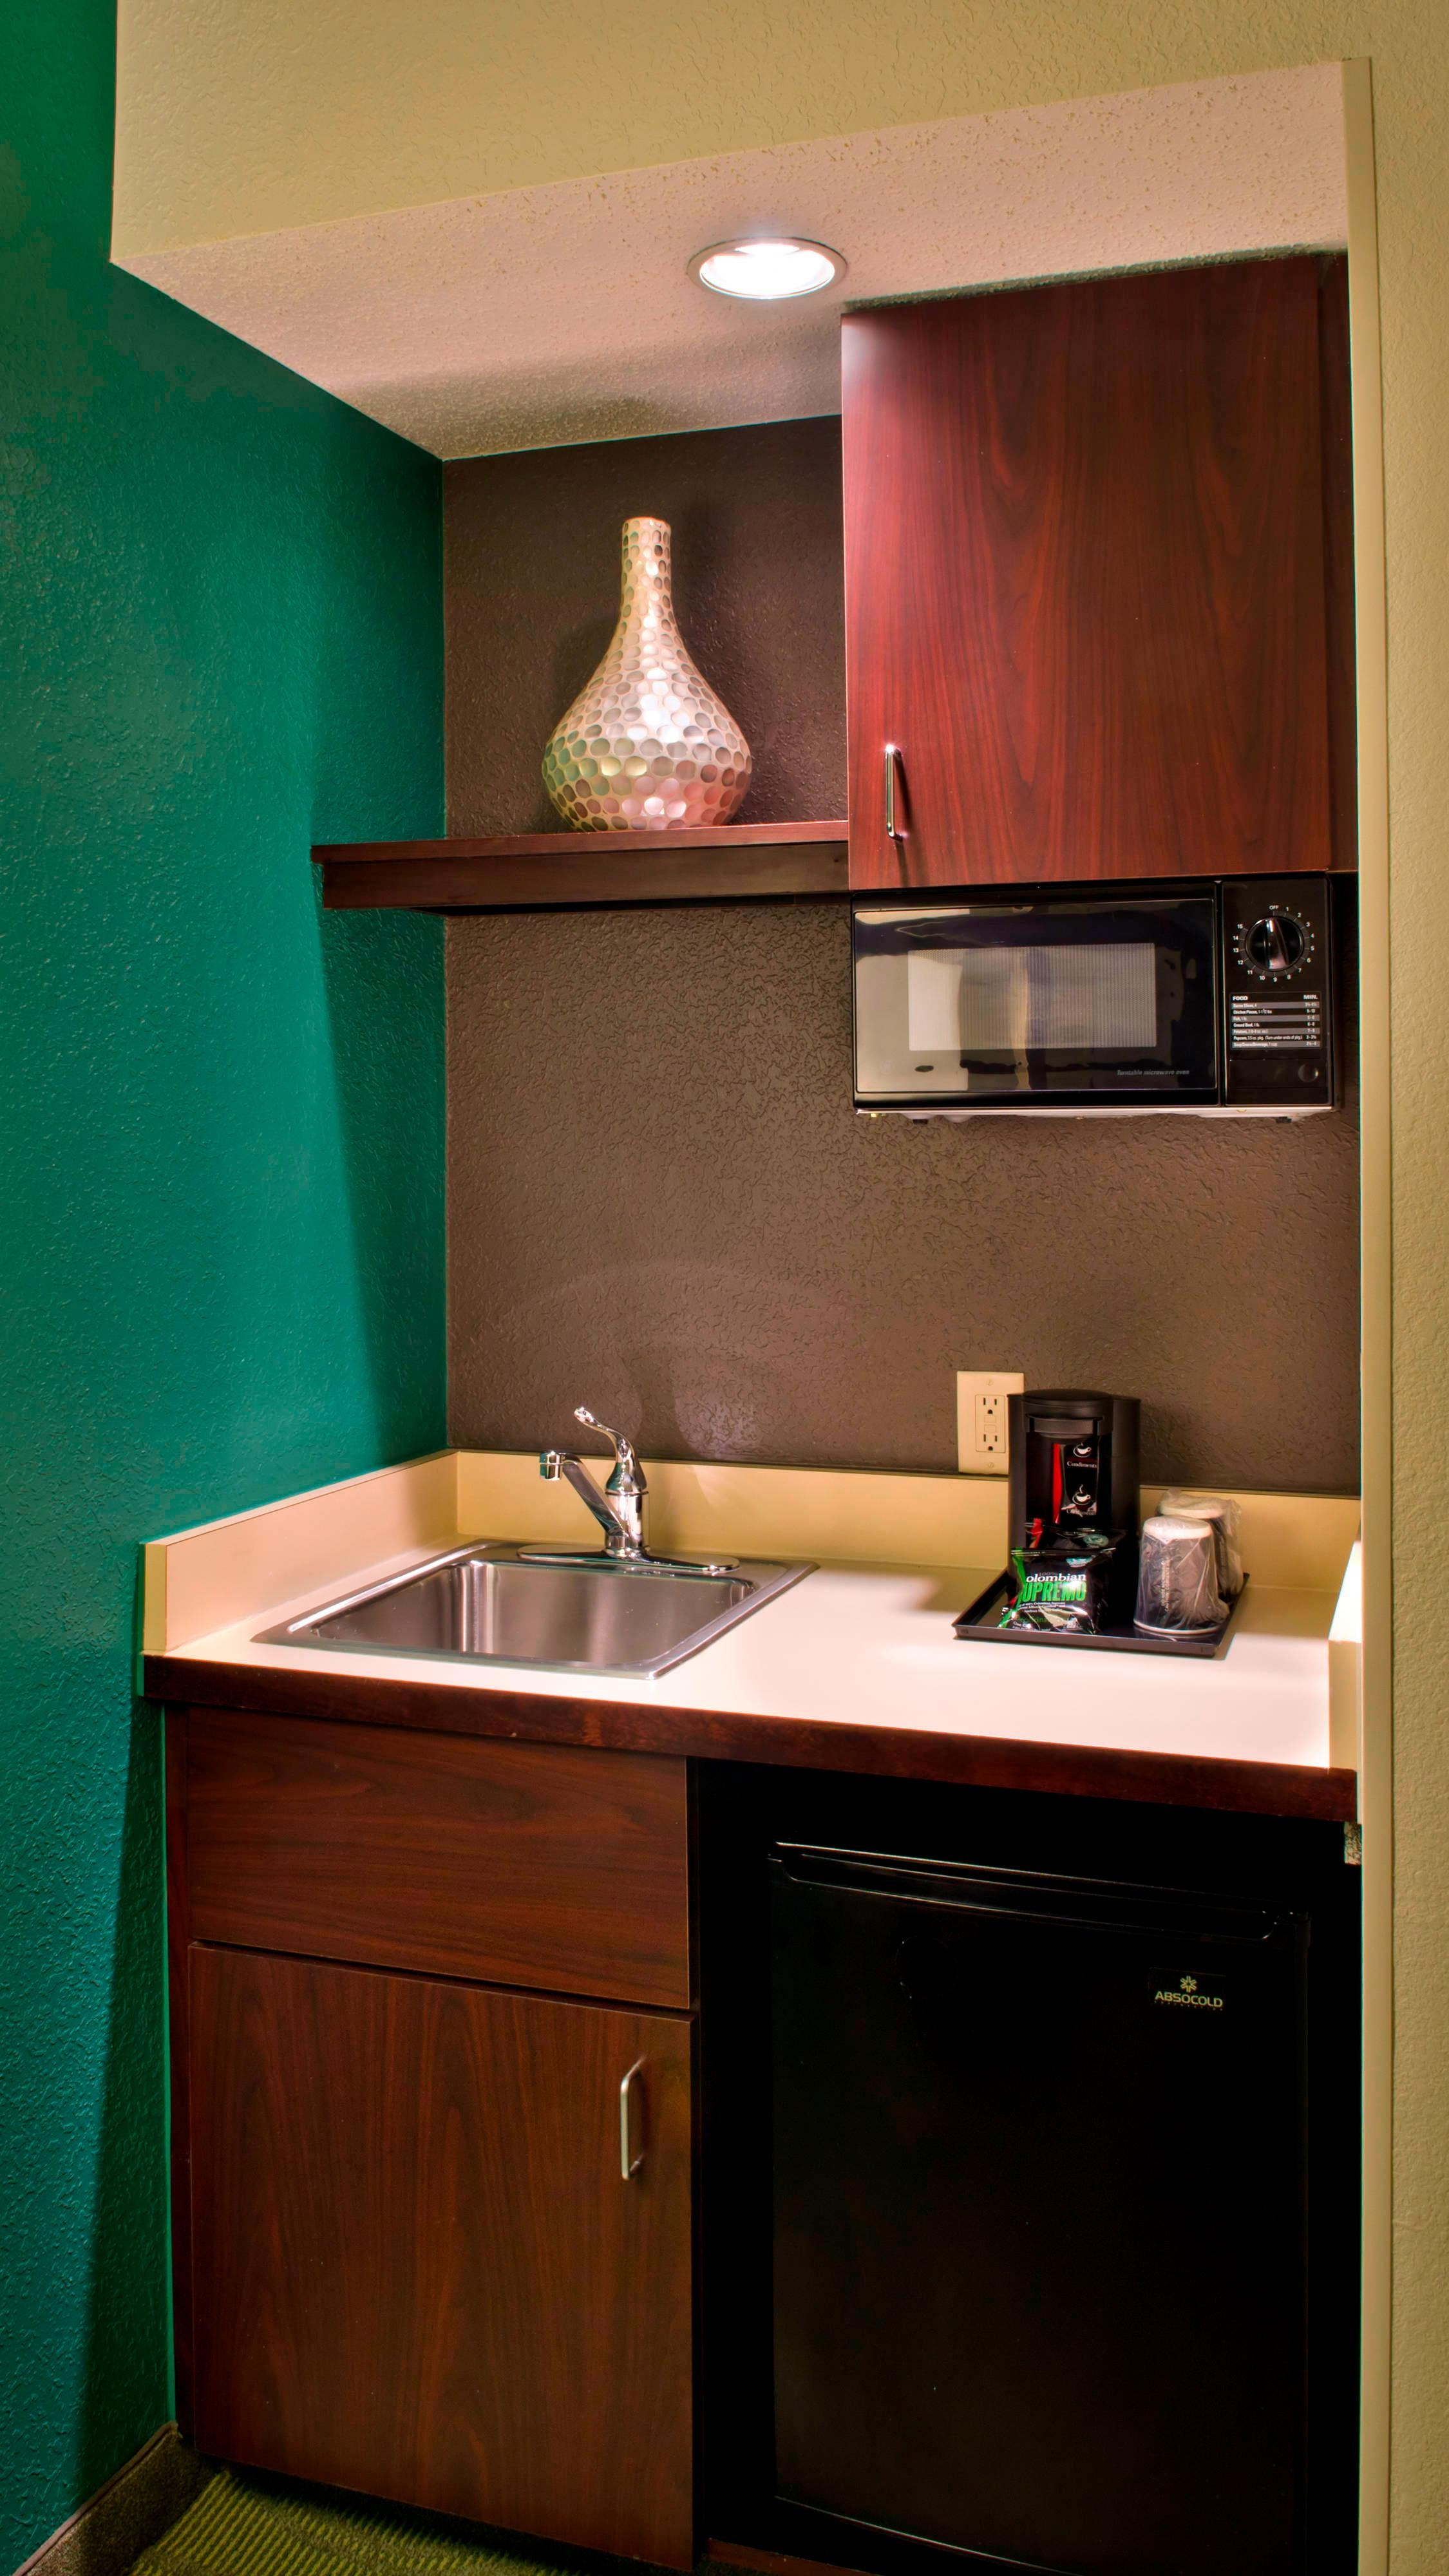 Suite Living Area - Kitchenette